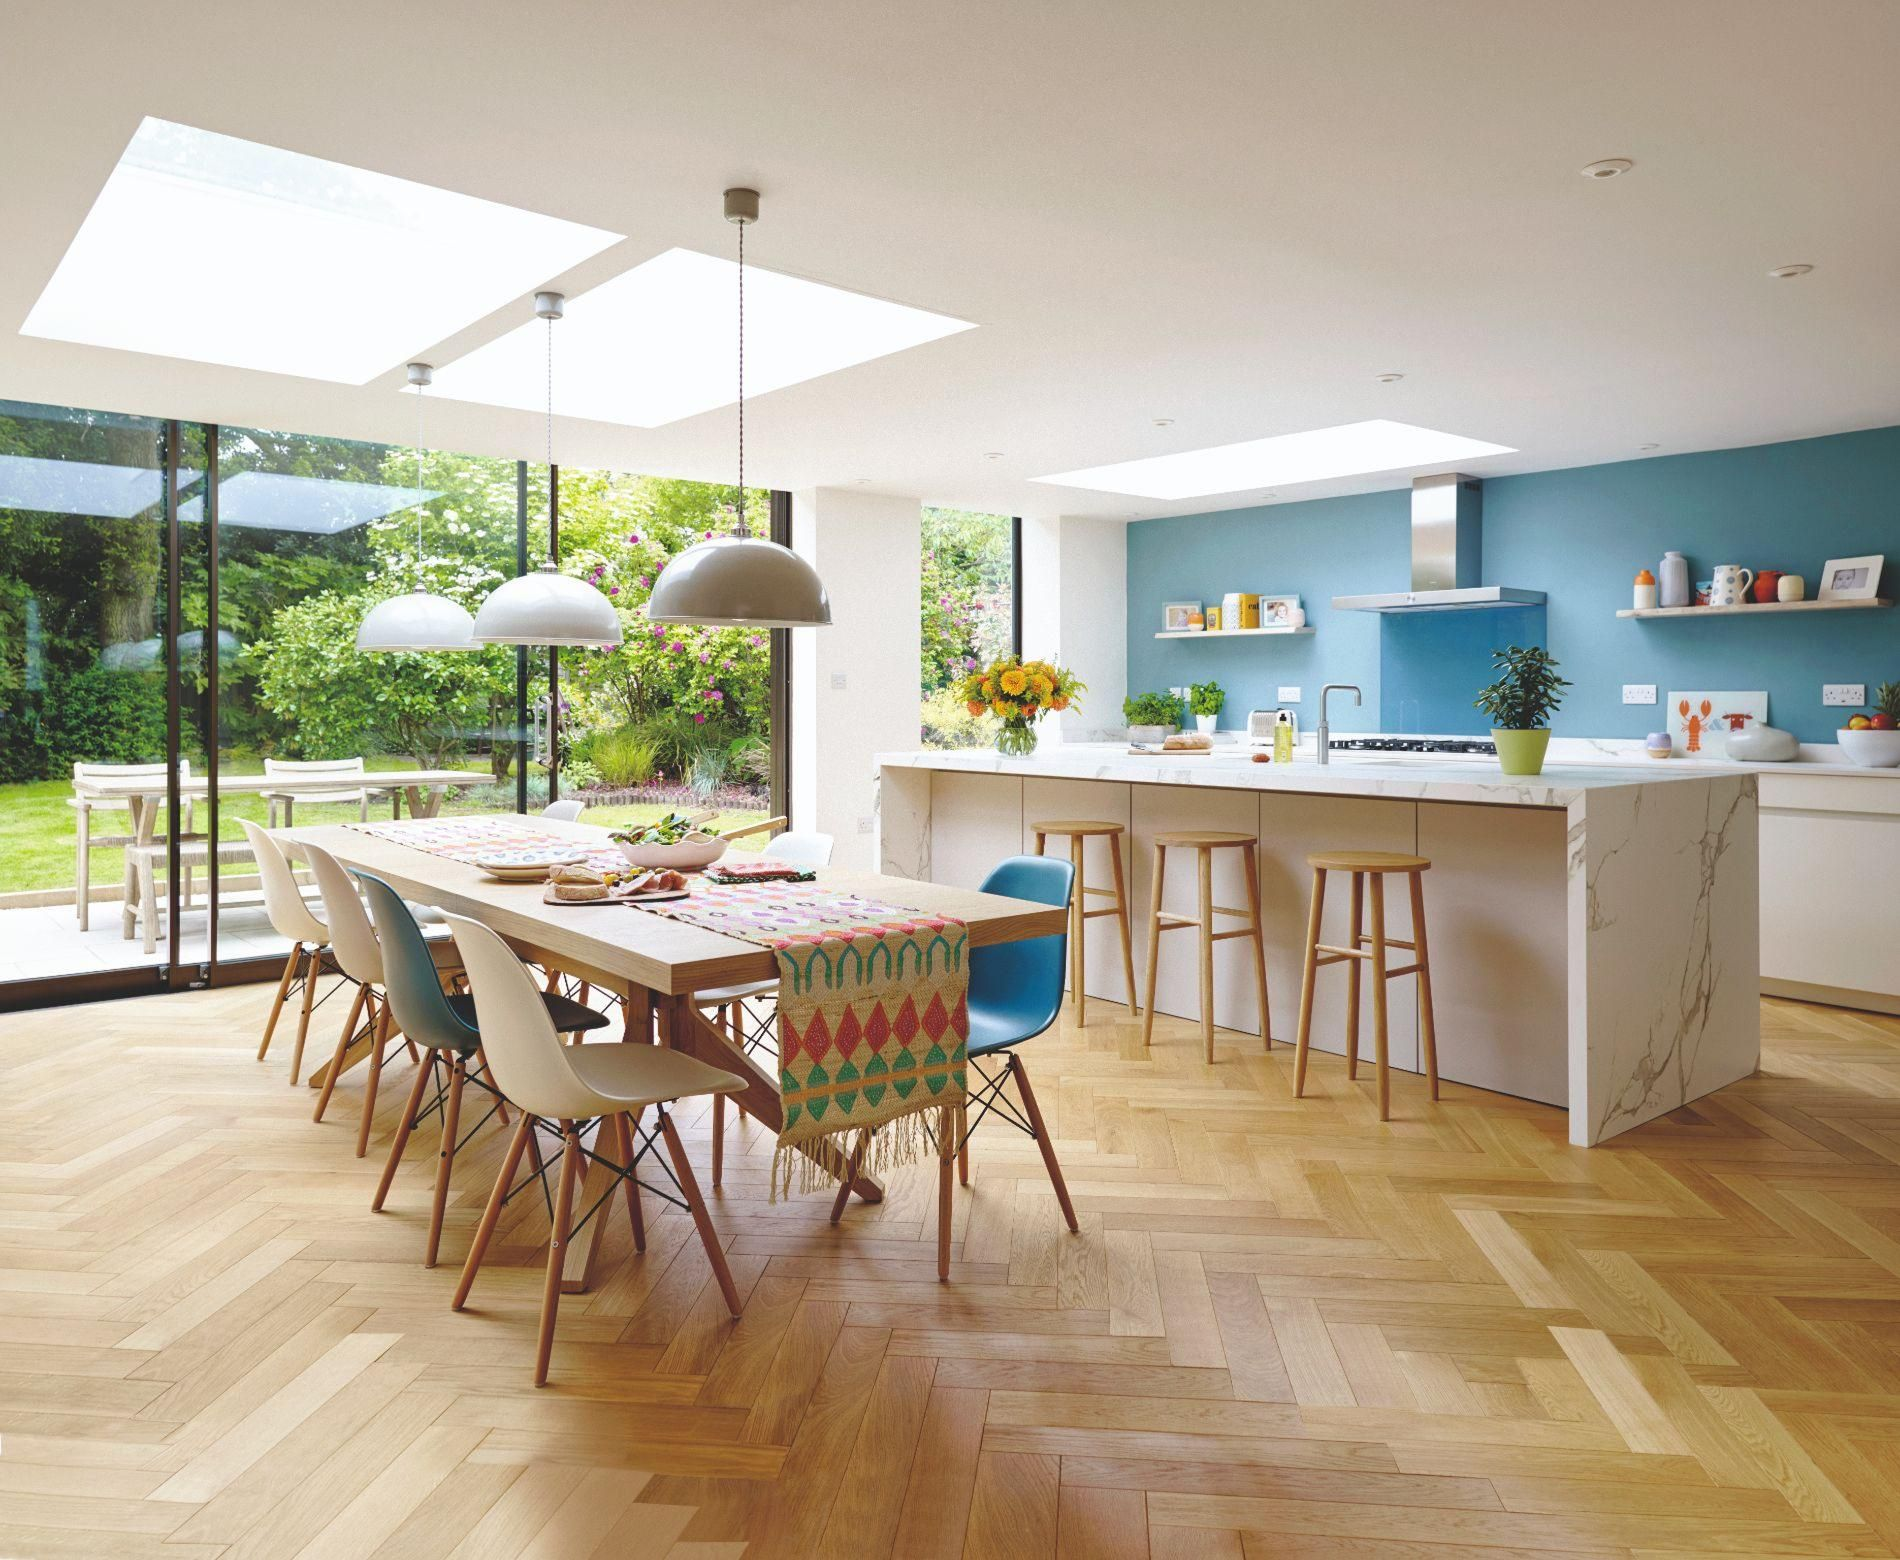 The essential homebuilding and renovating event in Edinburgh